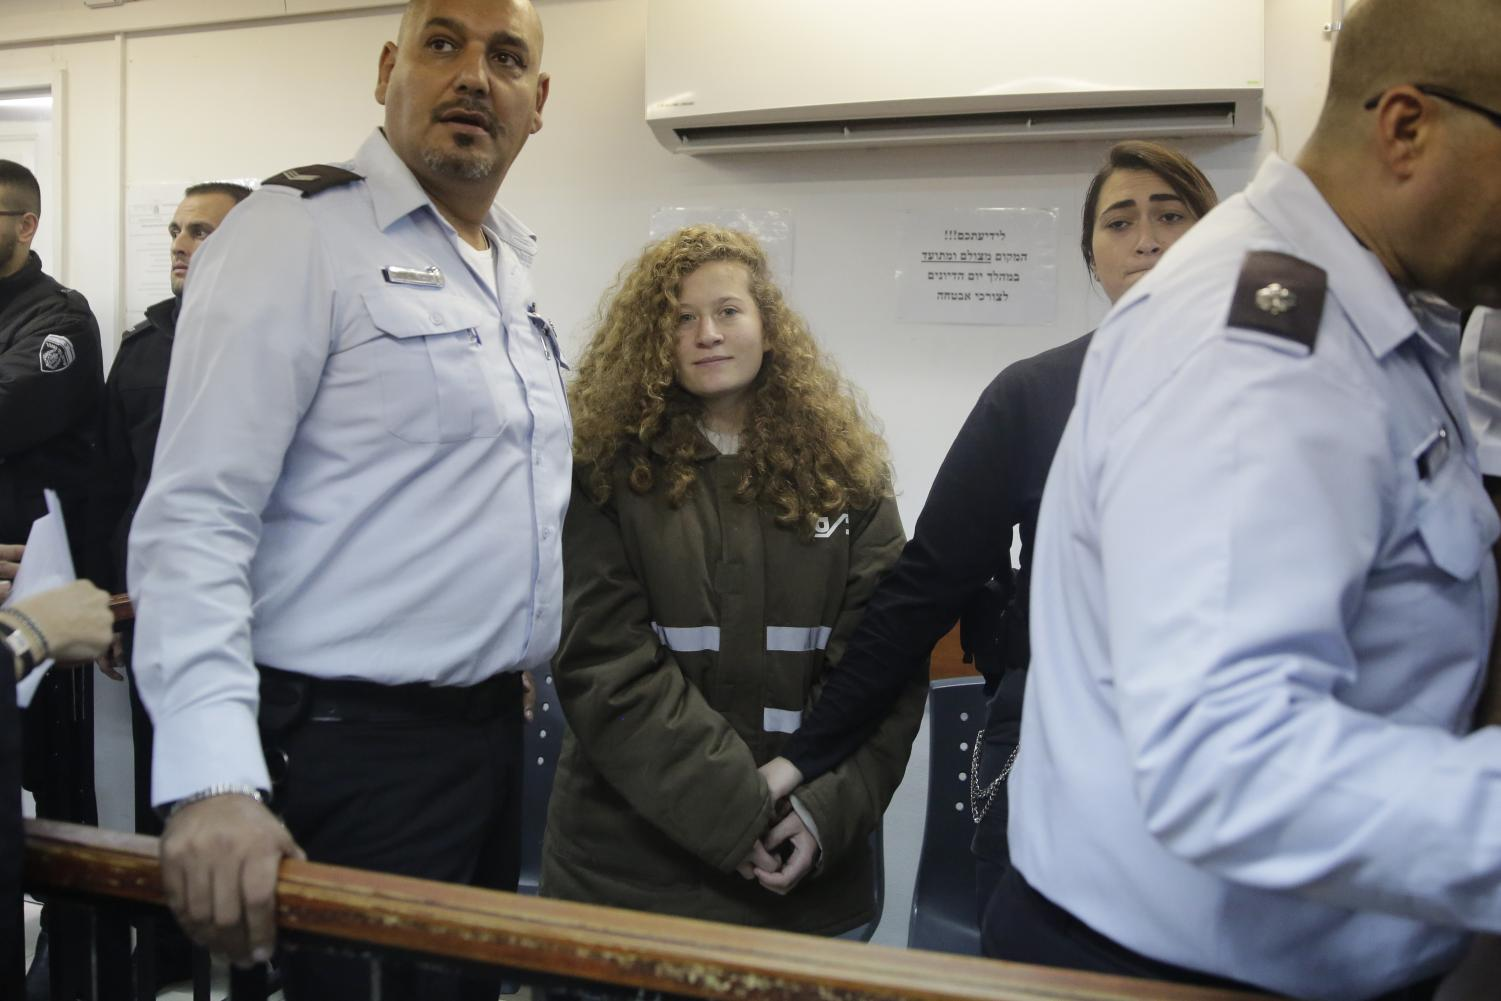 Ahed Tamimi is brought to a courtroom inside the Ofer military prison near Jerusalem, Monday, Jan. 15, 2018. Tamimi, 16, was filmed in December pushing, kicking and slapping Israeli soldiers, who stood by silently.  (Mahmoud Illean | AP)